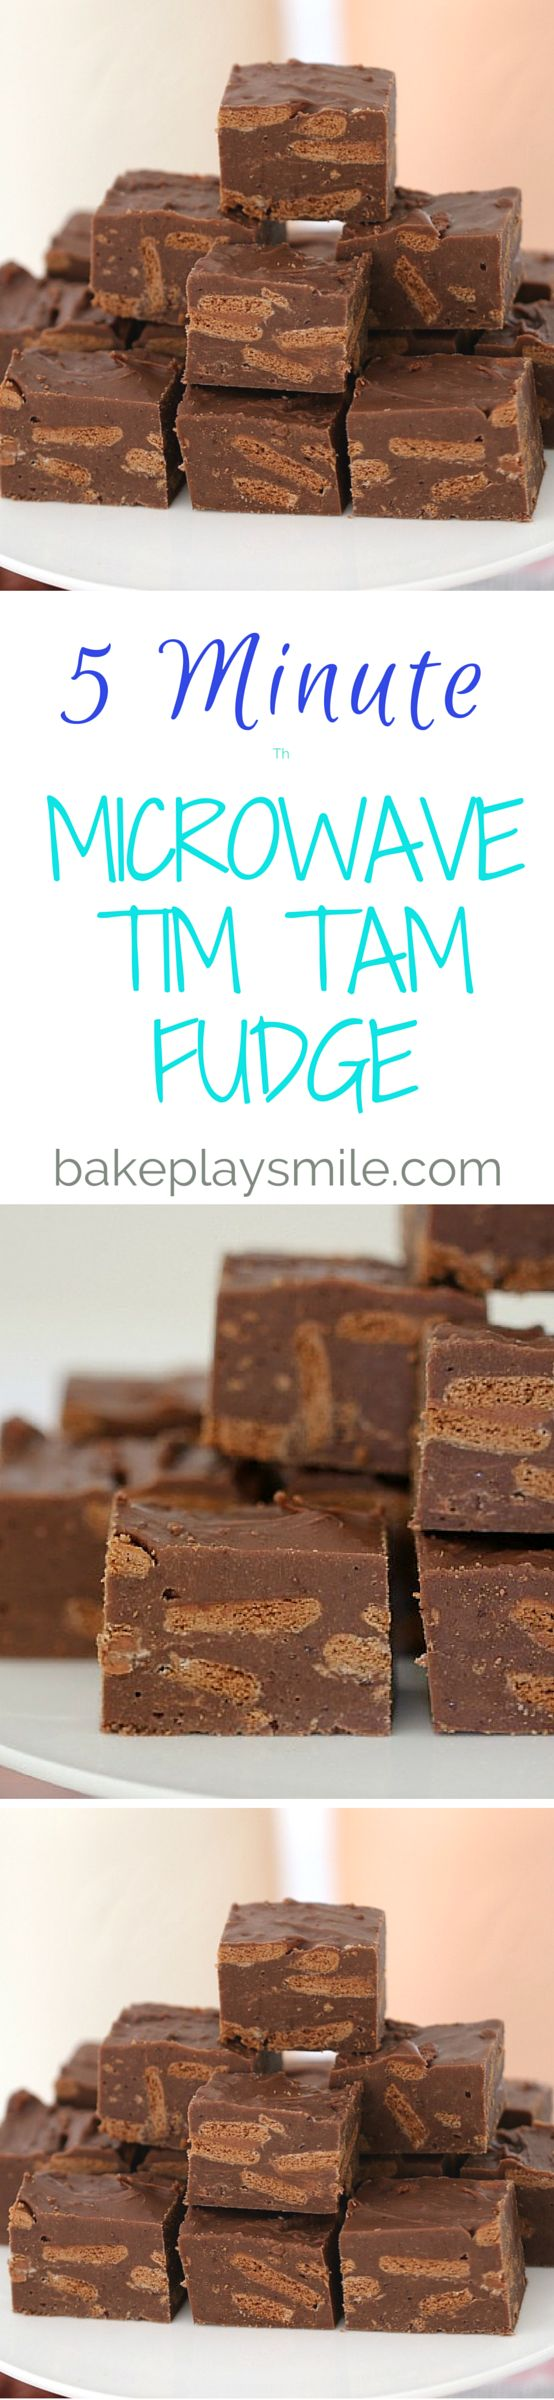 This 5 Minute Microwave Tim Tam Fudge is the quickest and easiest fudge you'll ever make! #timtam   #microwave   #fudge   #easy  #conventional #easy #chocolate #thermomix